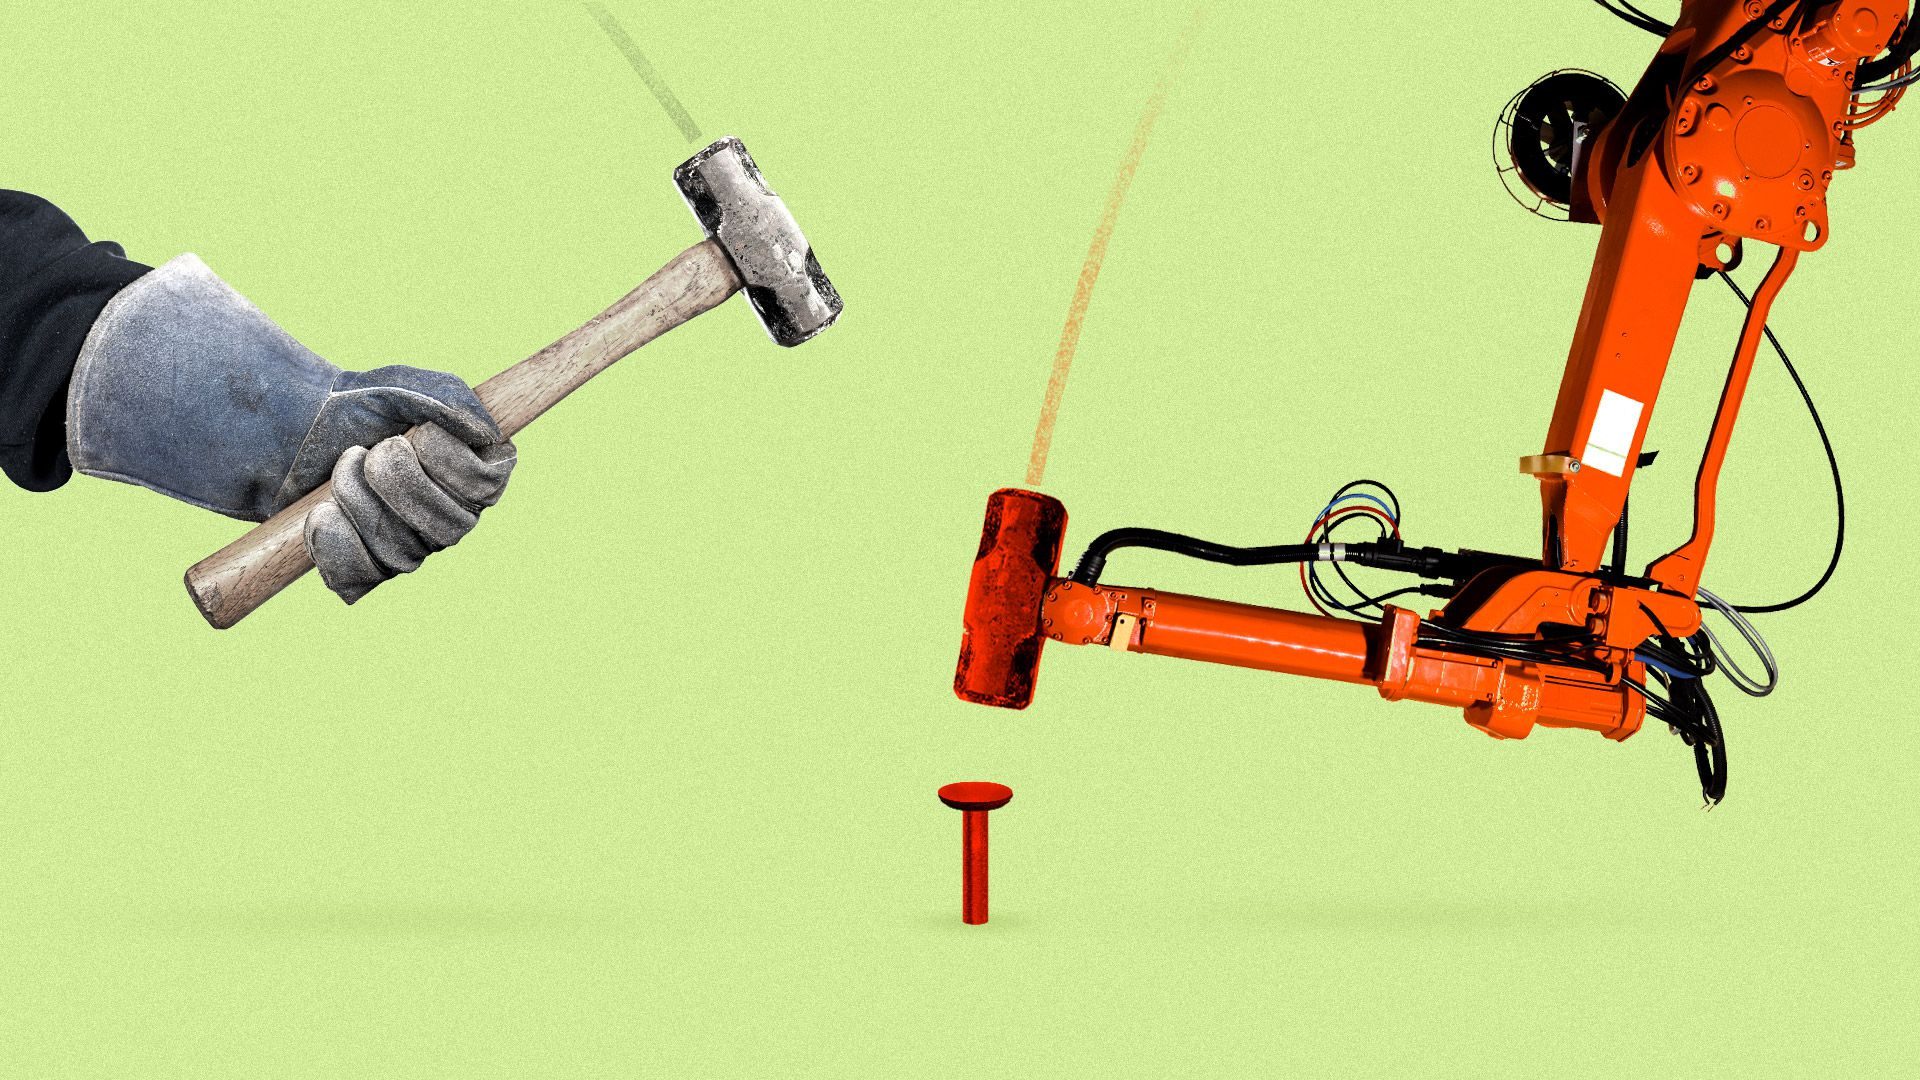 Shock report: Machines will do half our labor in less than 8